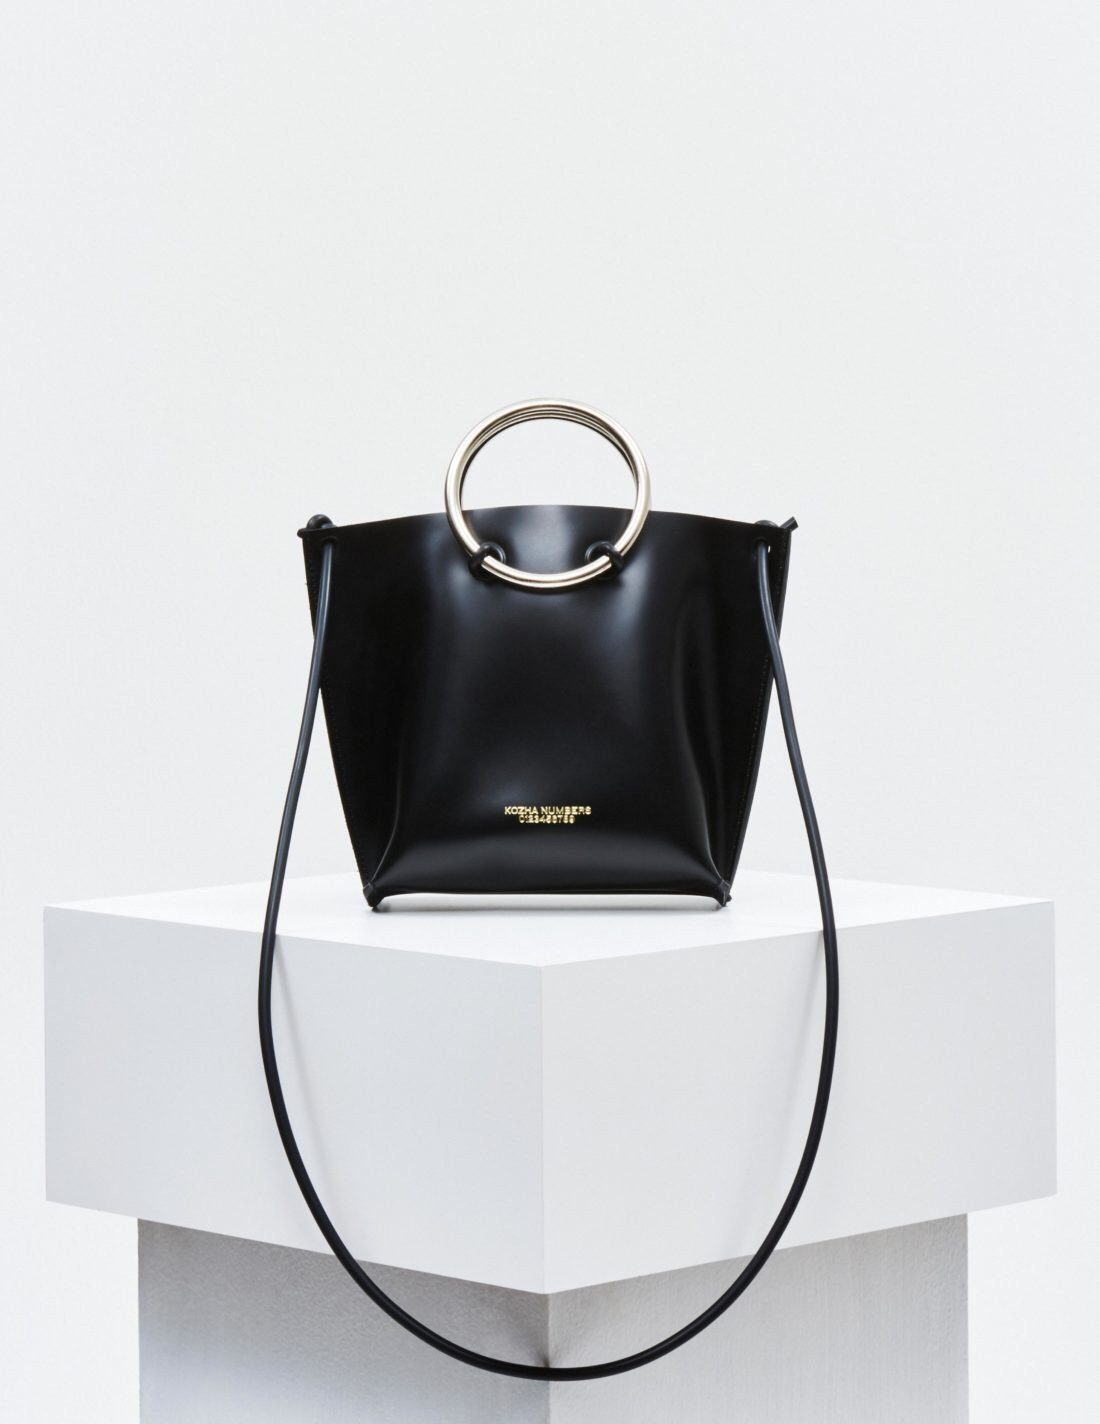 The Mini Safe with Strap Handbag Kozha Numbers - der ZEITGEIST